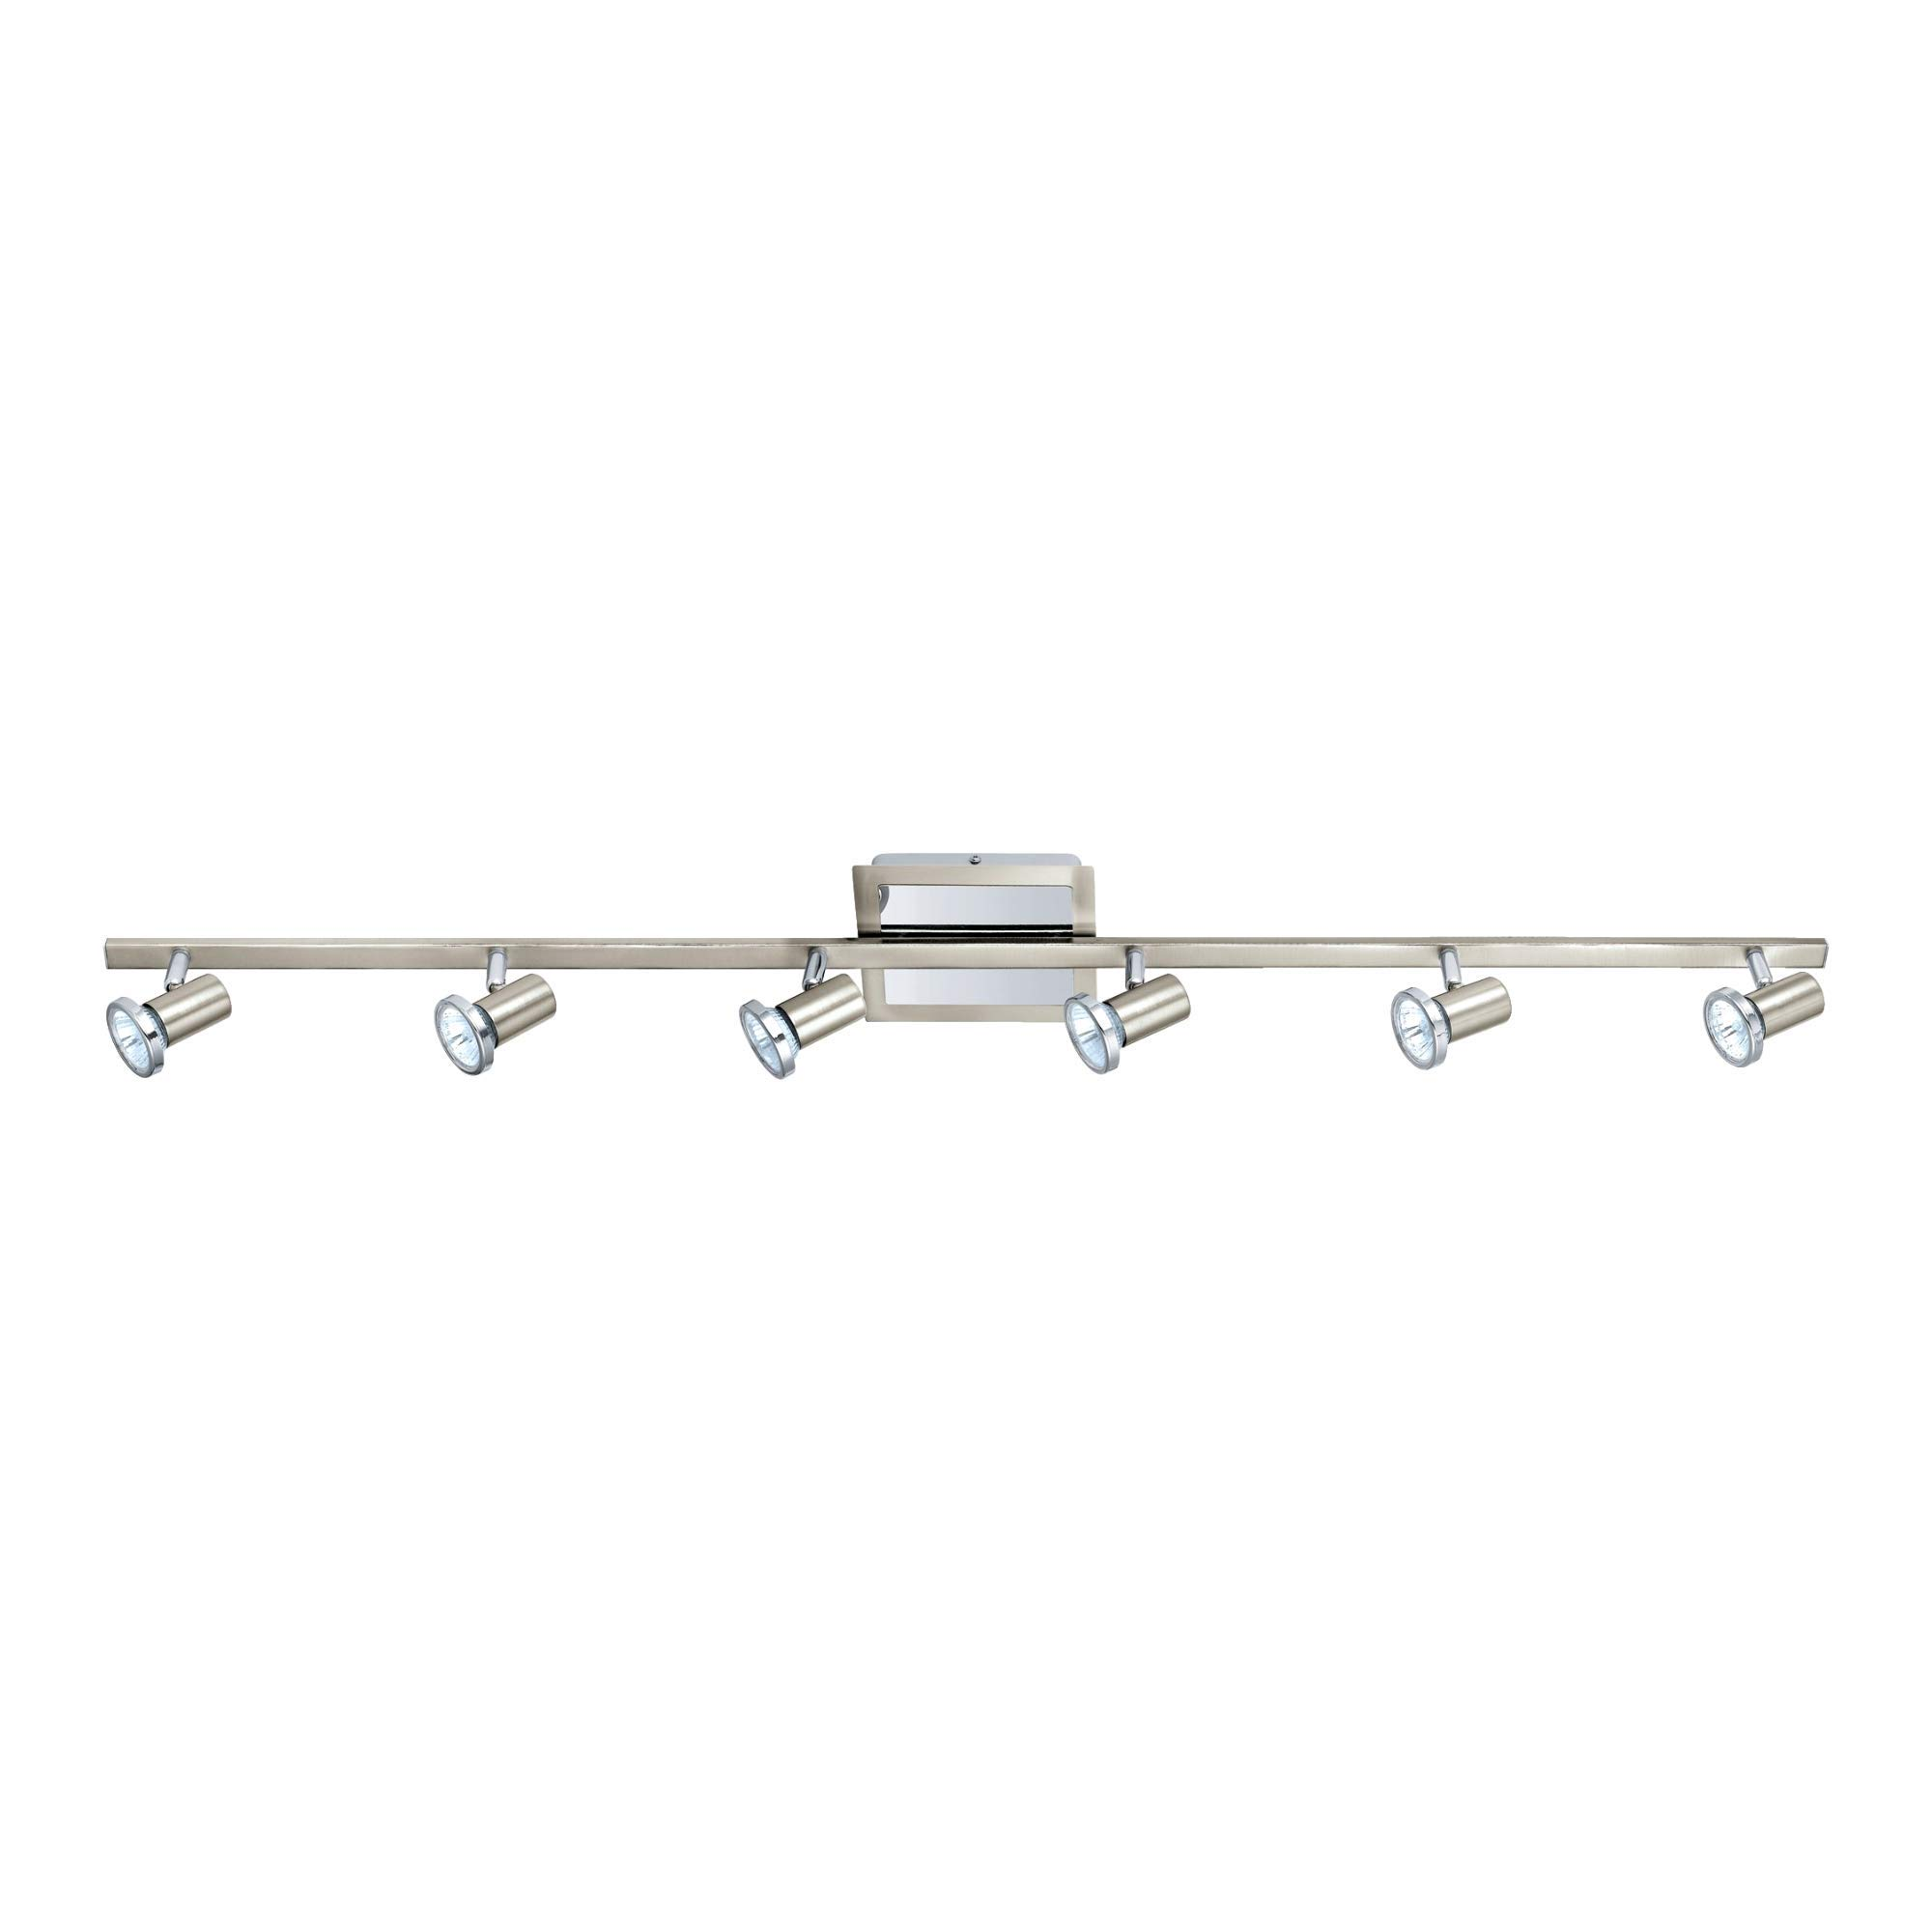 NOMA Track Lighting | Adjustable Ceiling Light Fixture | Perfect for Kitchen, Hallway, Living Room, and Bathroom | Nickel and Chrome, 6-Light